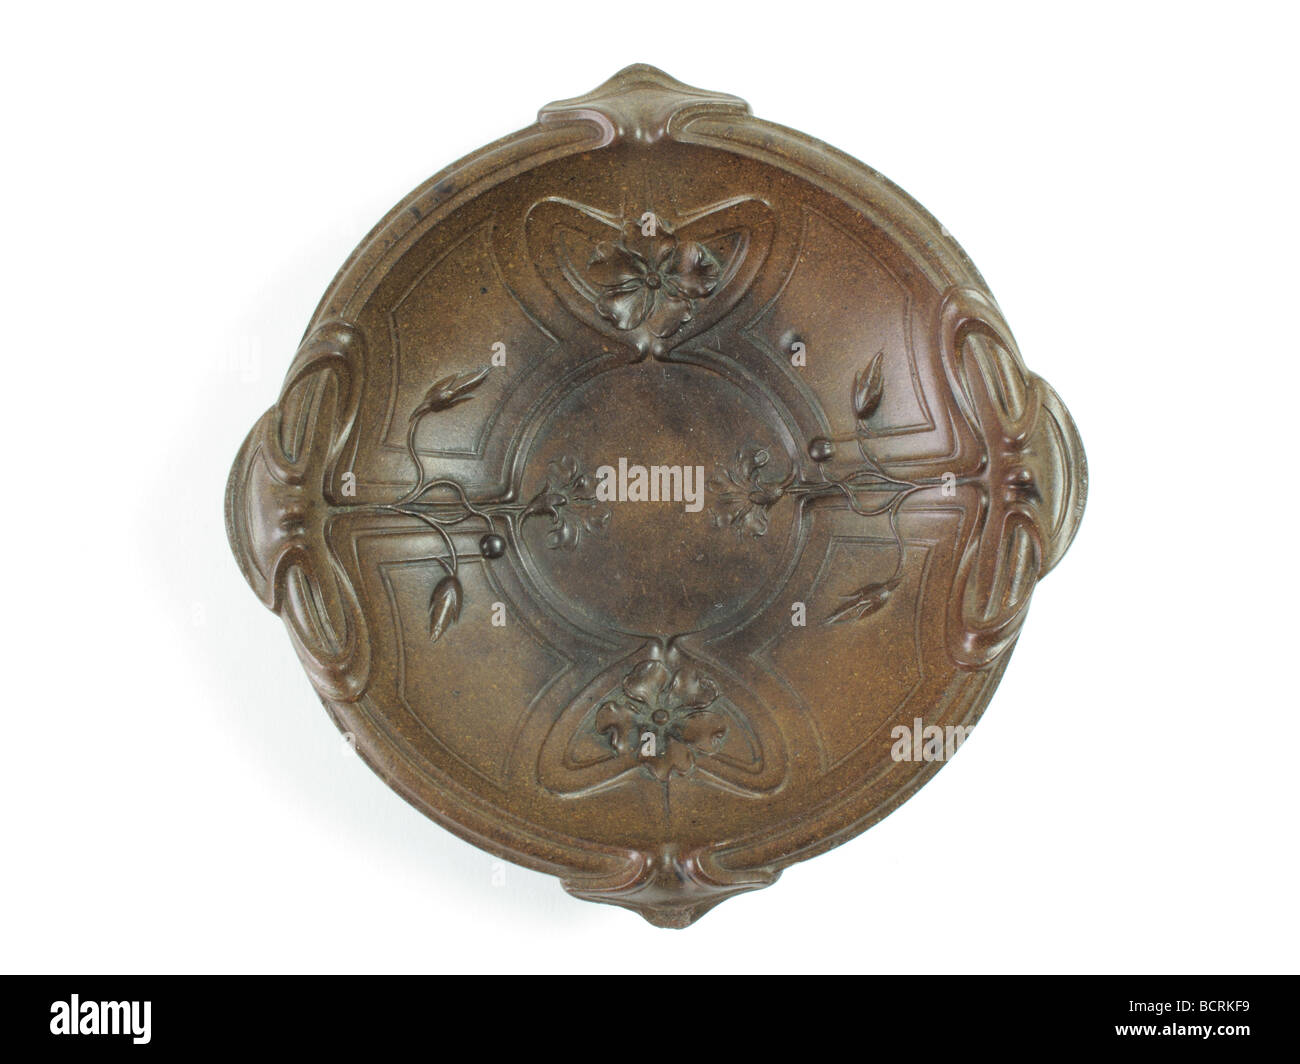 antique Bakelite dish with Art Nouveau relief decoration of flowers and whiplash lines, made circa 1910 - Stock Image